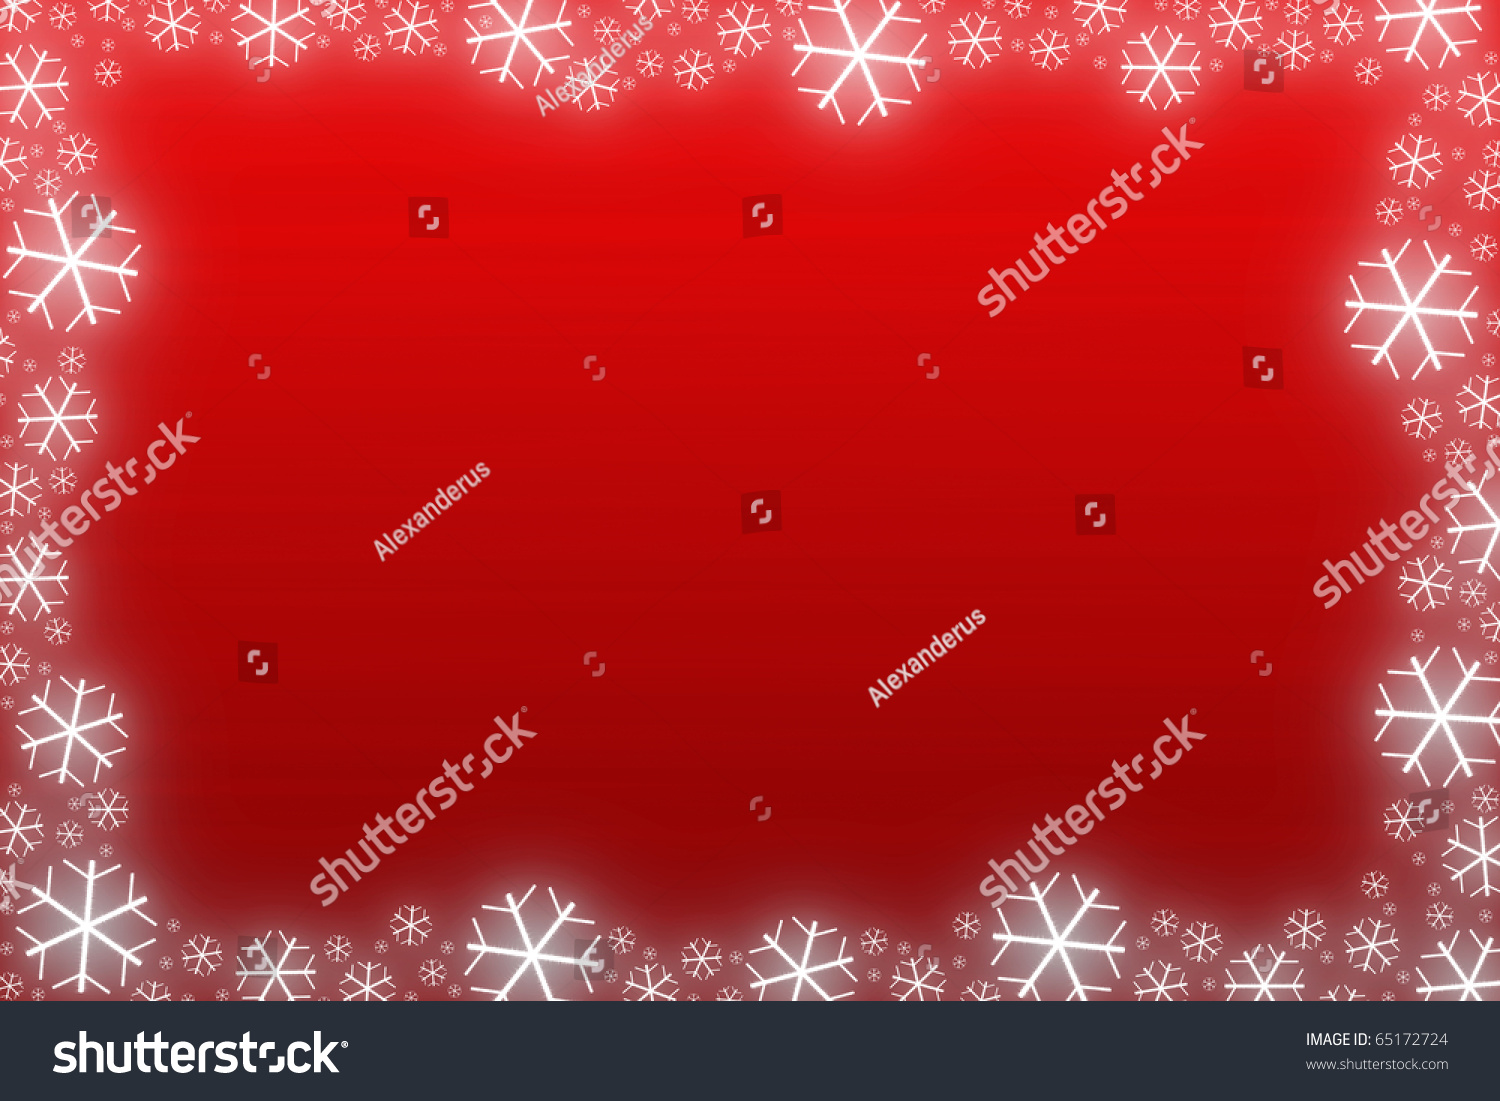 merry christmas and happy new year card blank